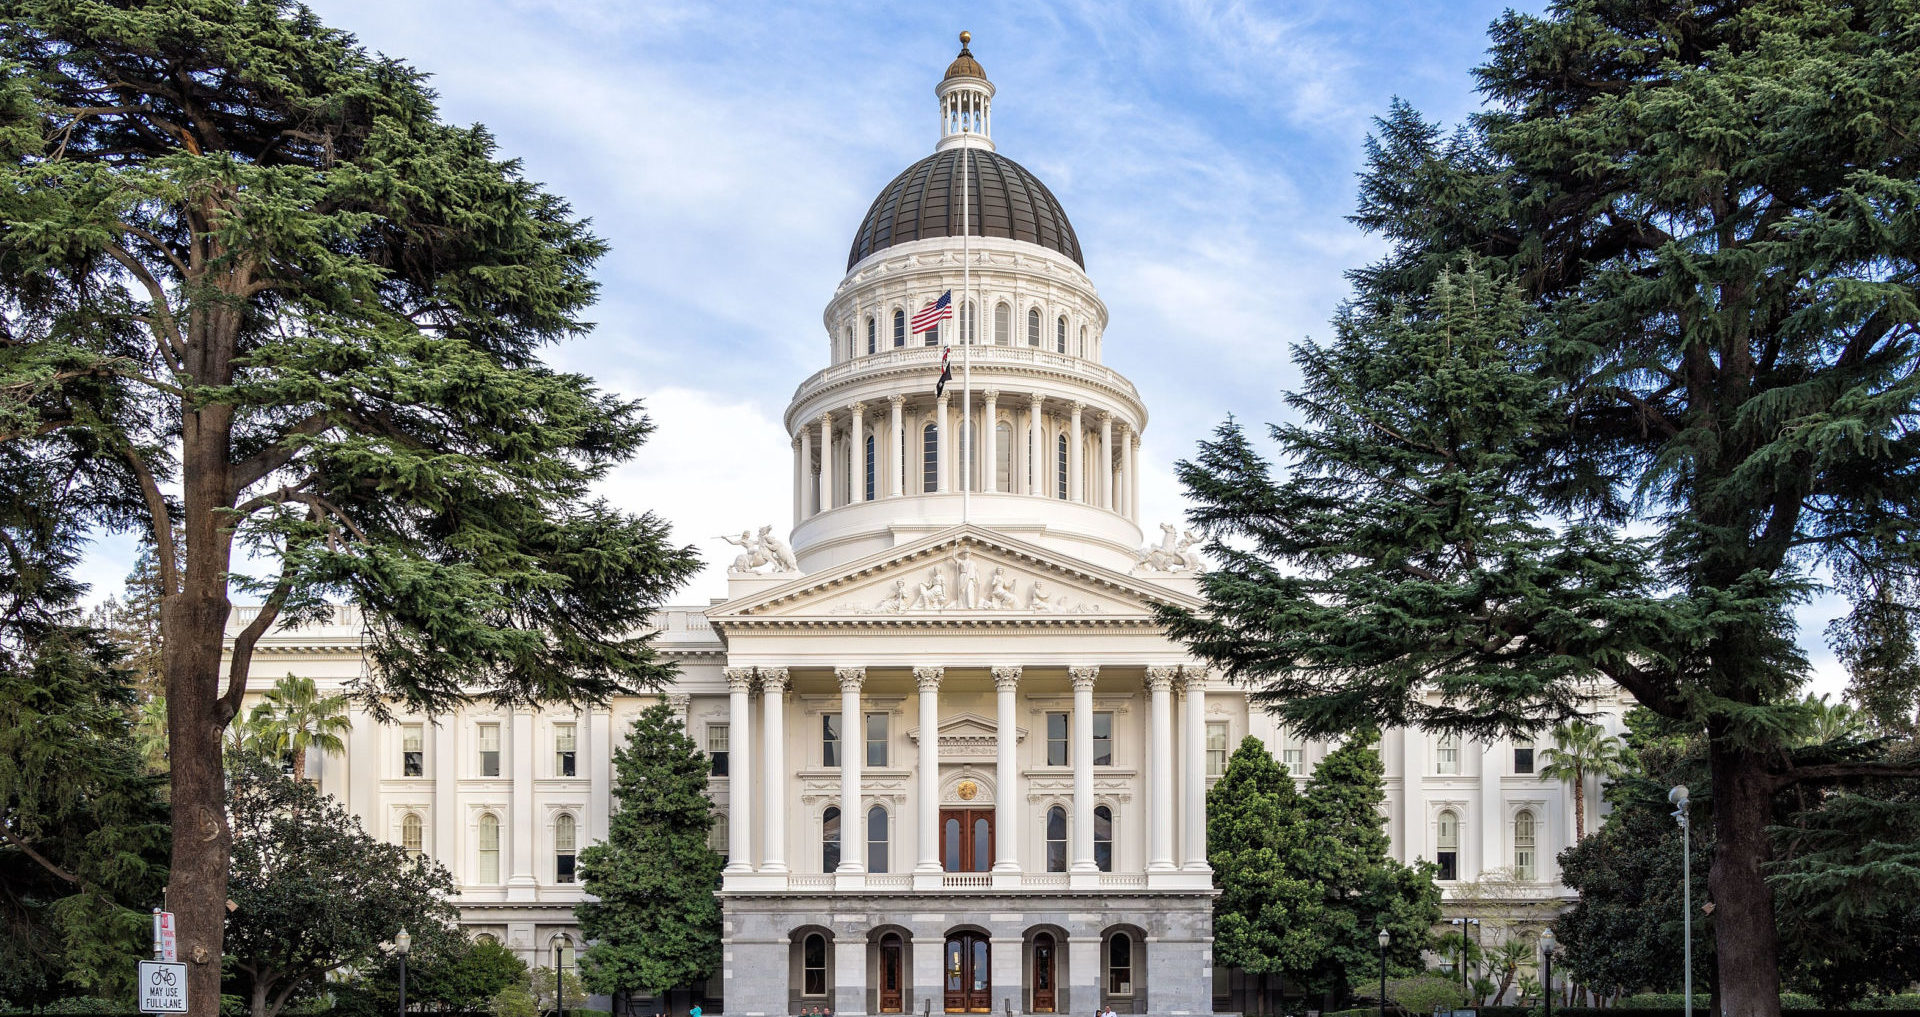 The California State Capitol building in Sacramento, California. Photo courtesy California State Assembly.